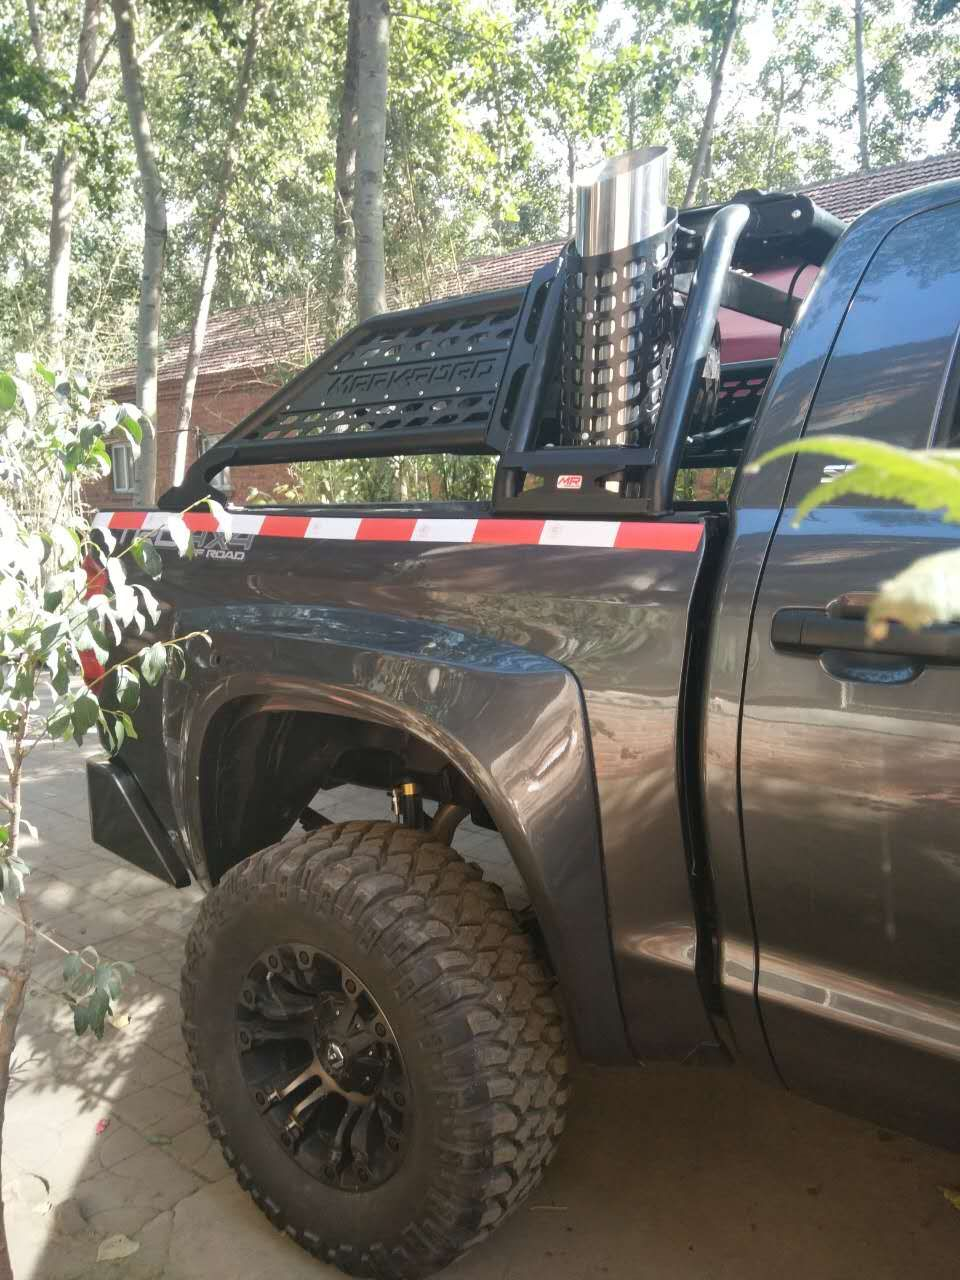 hunter portal bar roll bar with tire carrier for toyota tundra rh pinterest com 2010 toyota tundra roll bar toyota tundra roll bar for 2015